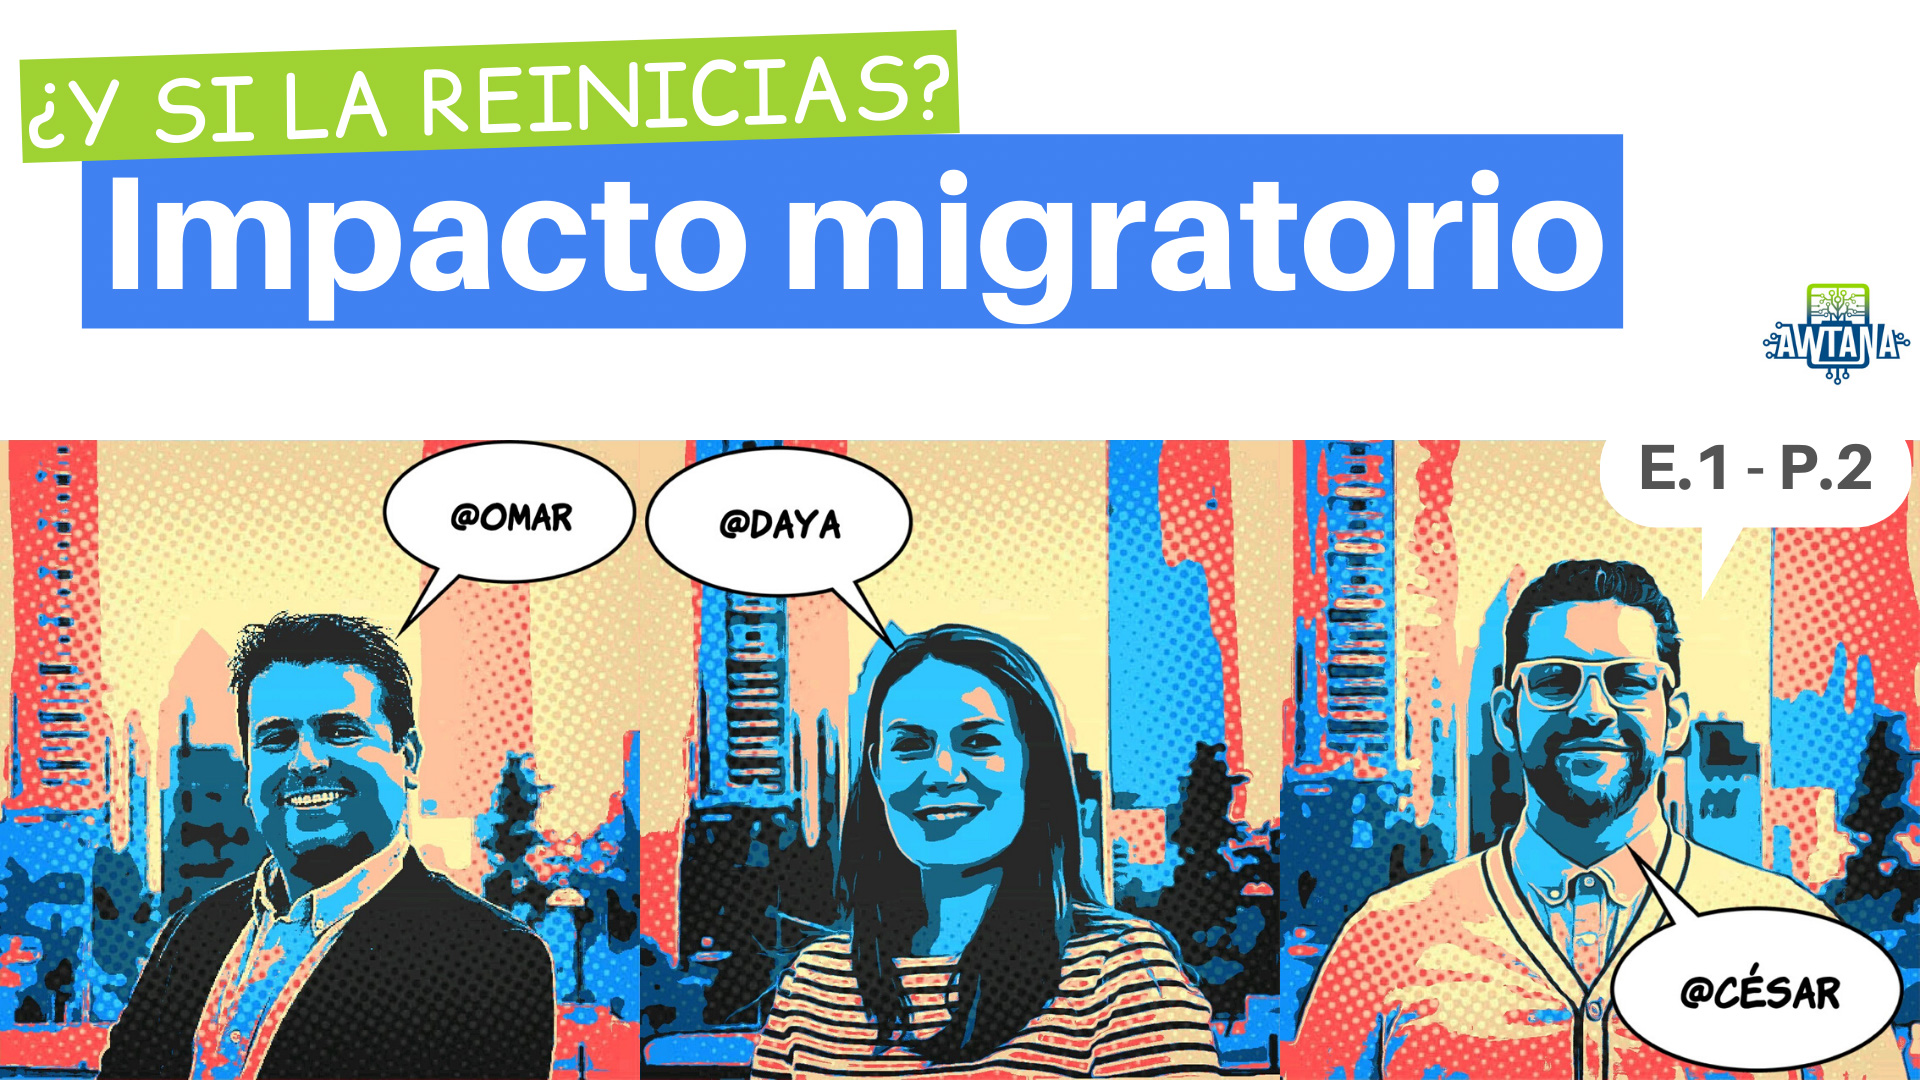 Episodio 1 Migración Podcast Awtana